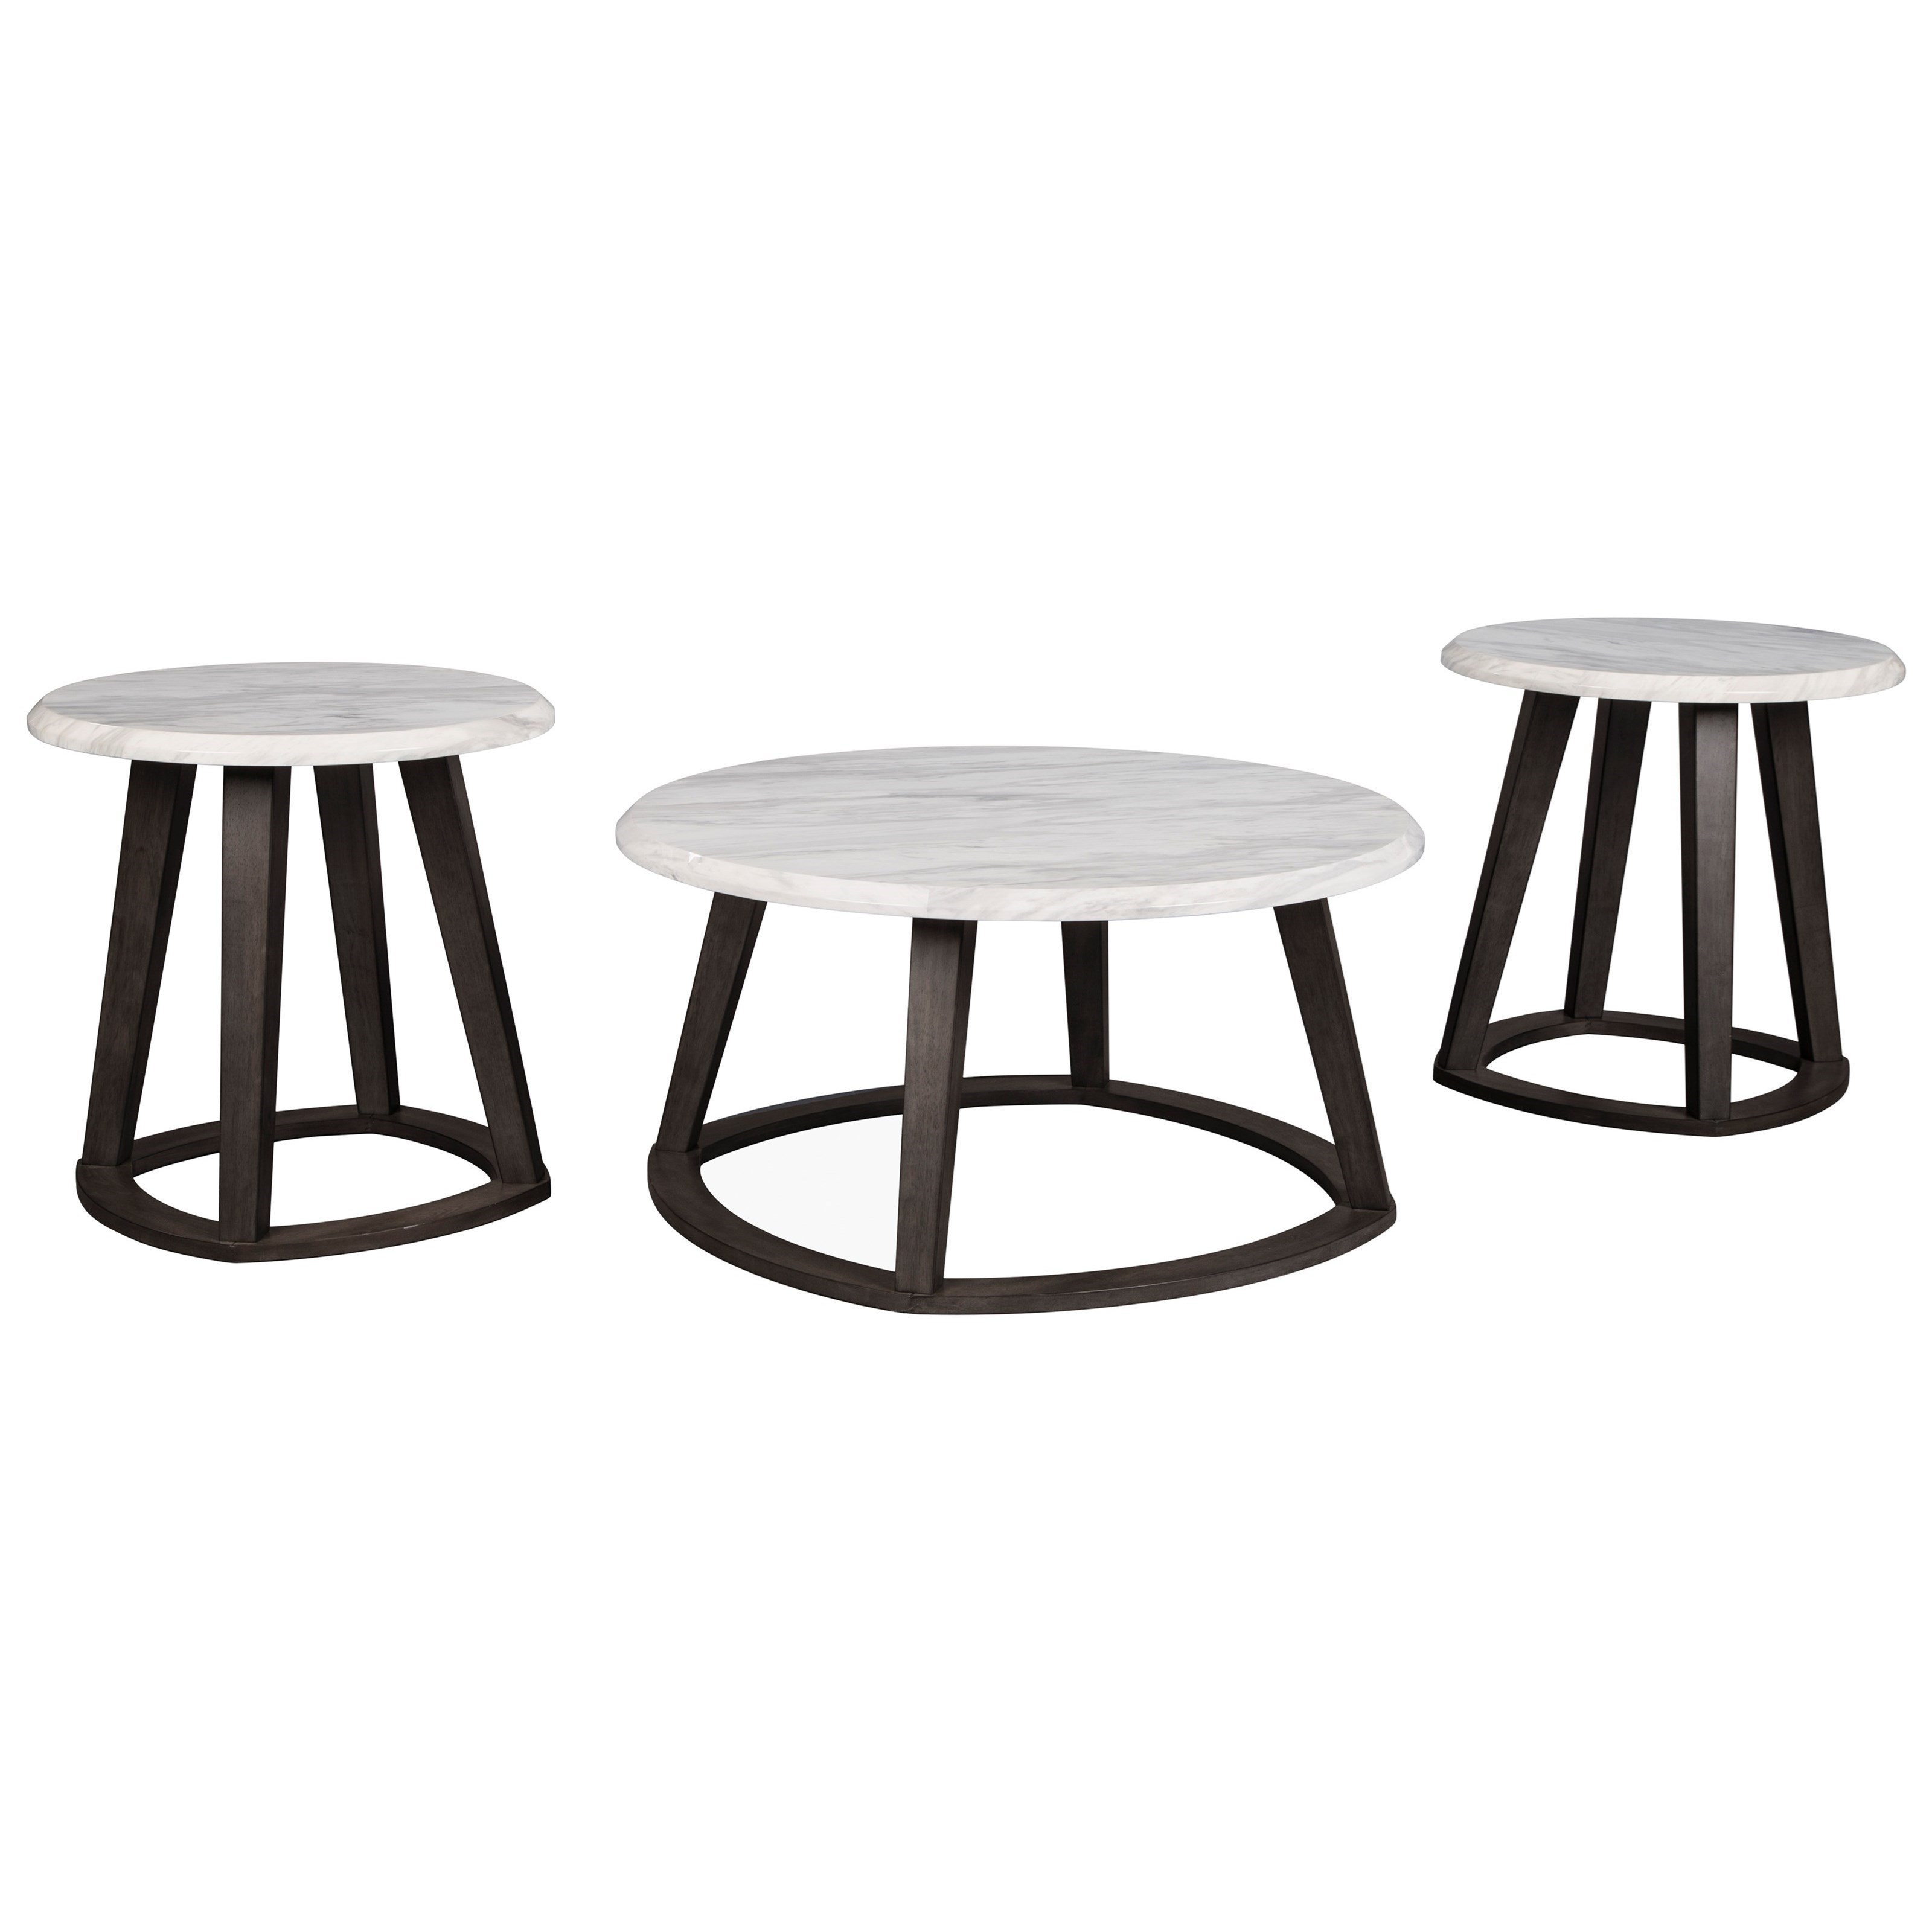 Luvoni Occasional Table Set by Signature Design by Ashley at Beck's Furniture